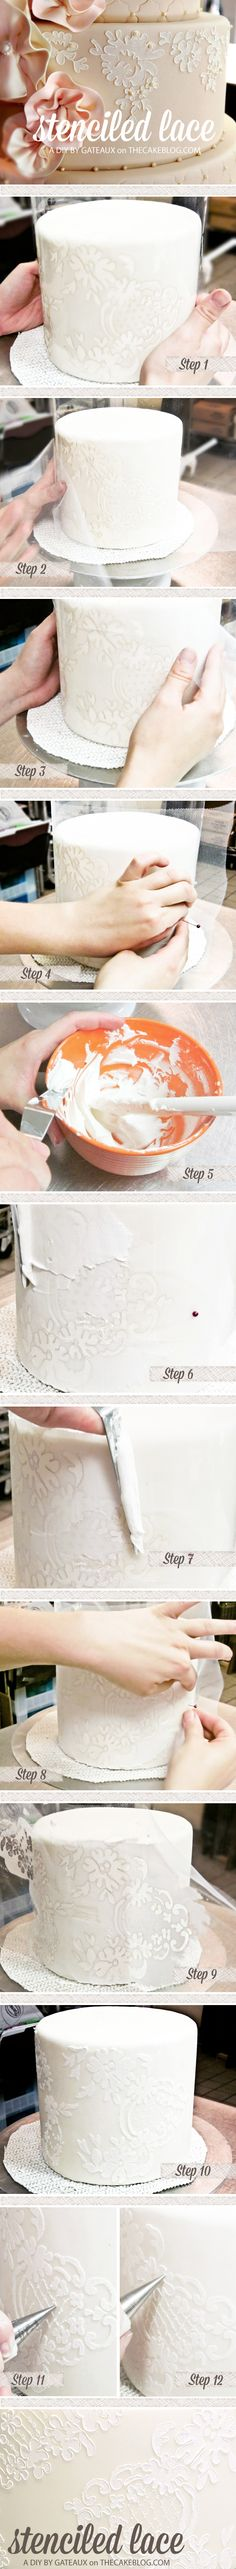 STENCILED LACE TUTORIAL